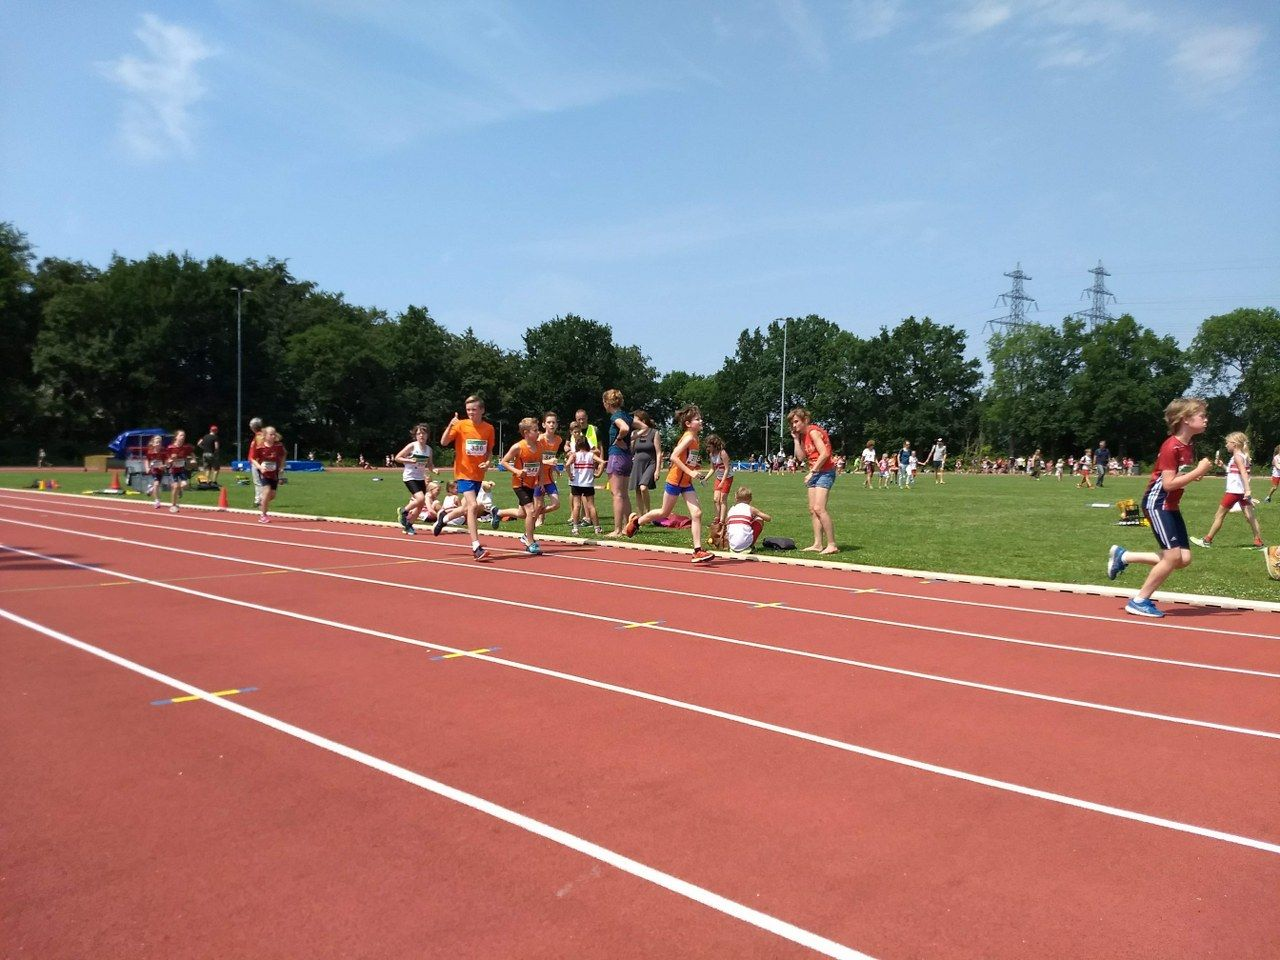 Climax - 2e Athletic Champs Stedenwedstrijd 2018 Deventer - Meters maken